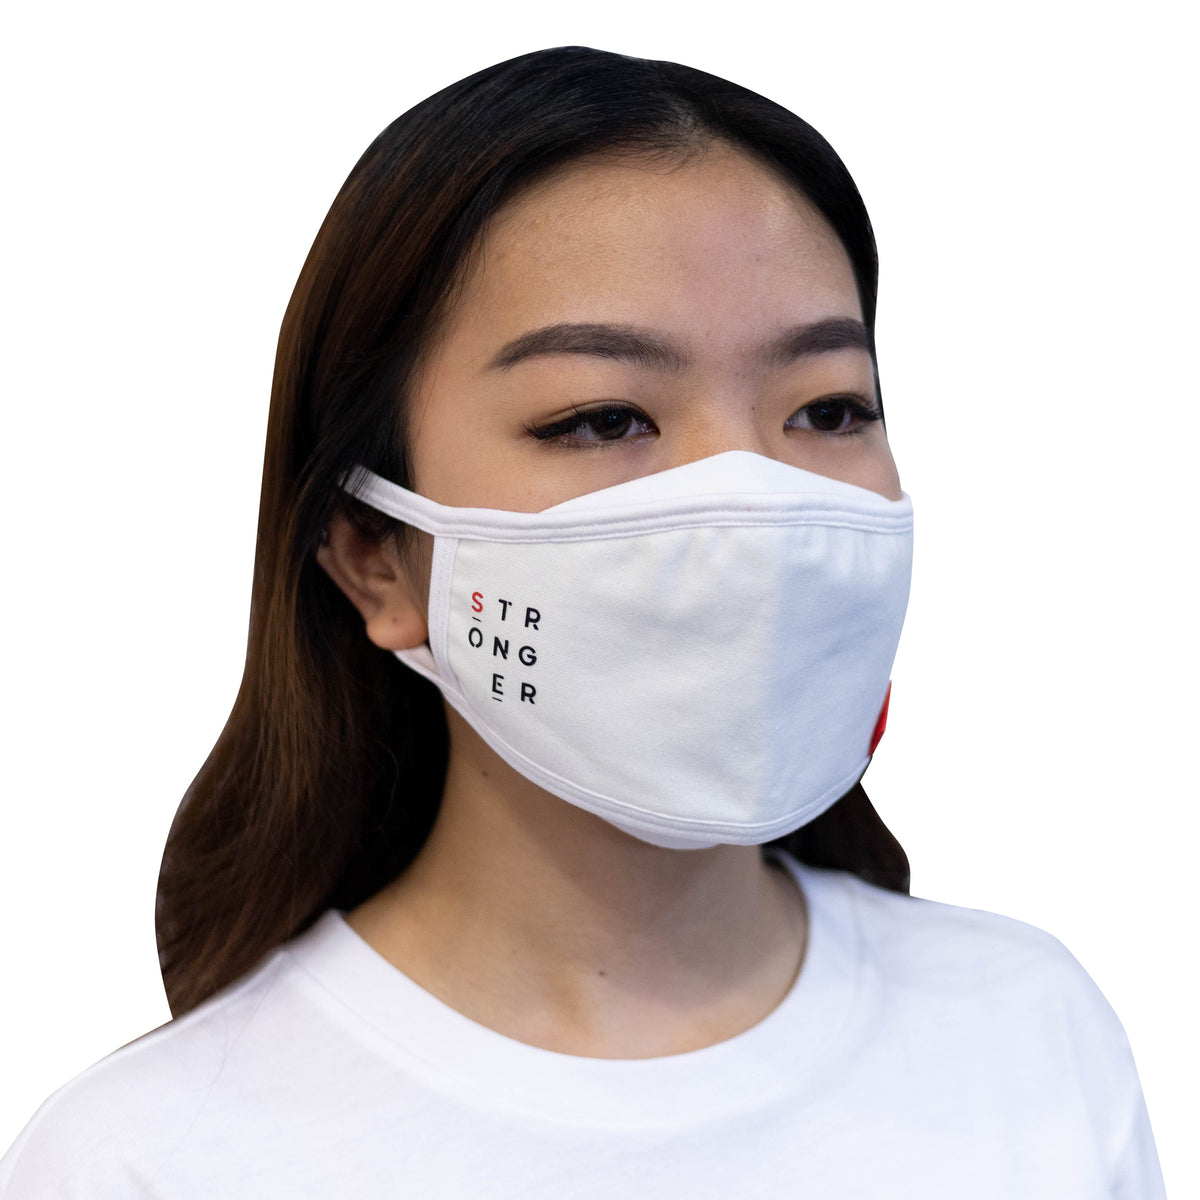 ULTRA A Anti-Bacterial Unisex Tee + 3-Ply Anti-Bacterial Mask Co-Ord Set (Stronger - Adults)